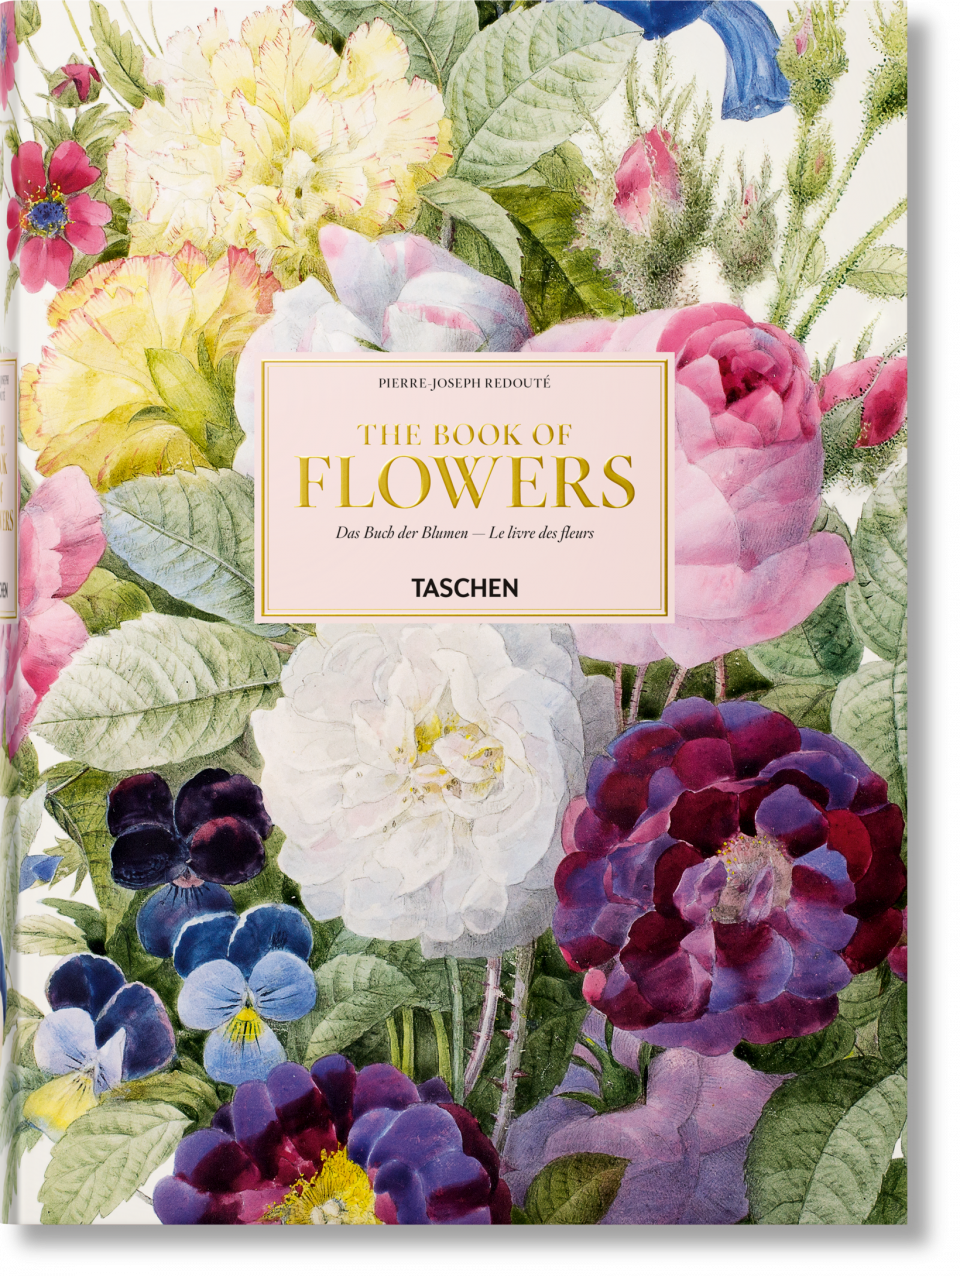 FLoral masterpieces - Available at Taschen, £50.00